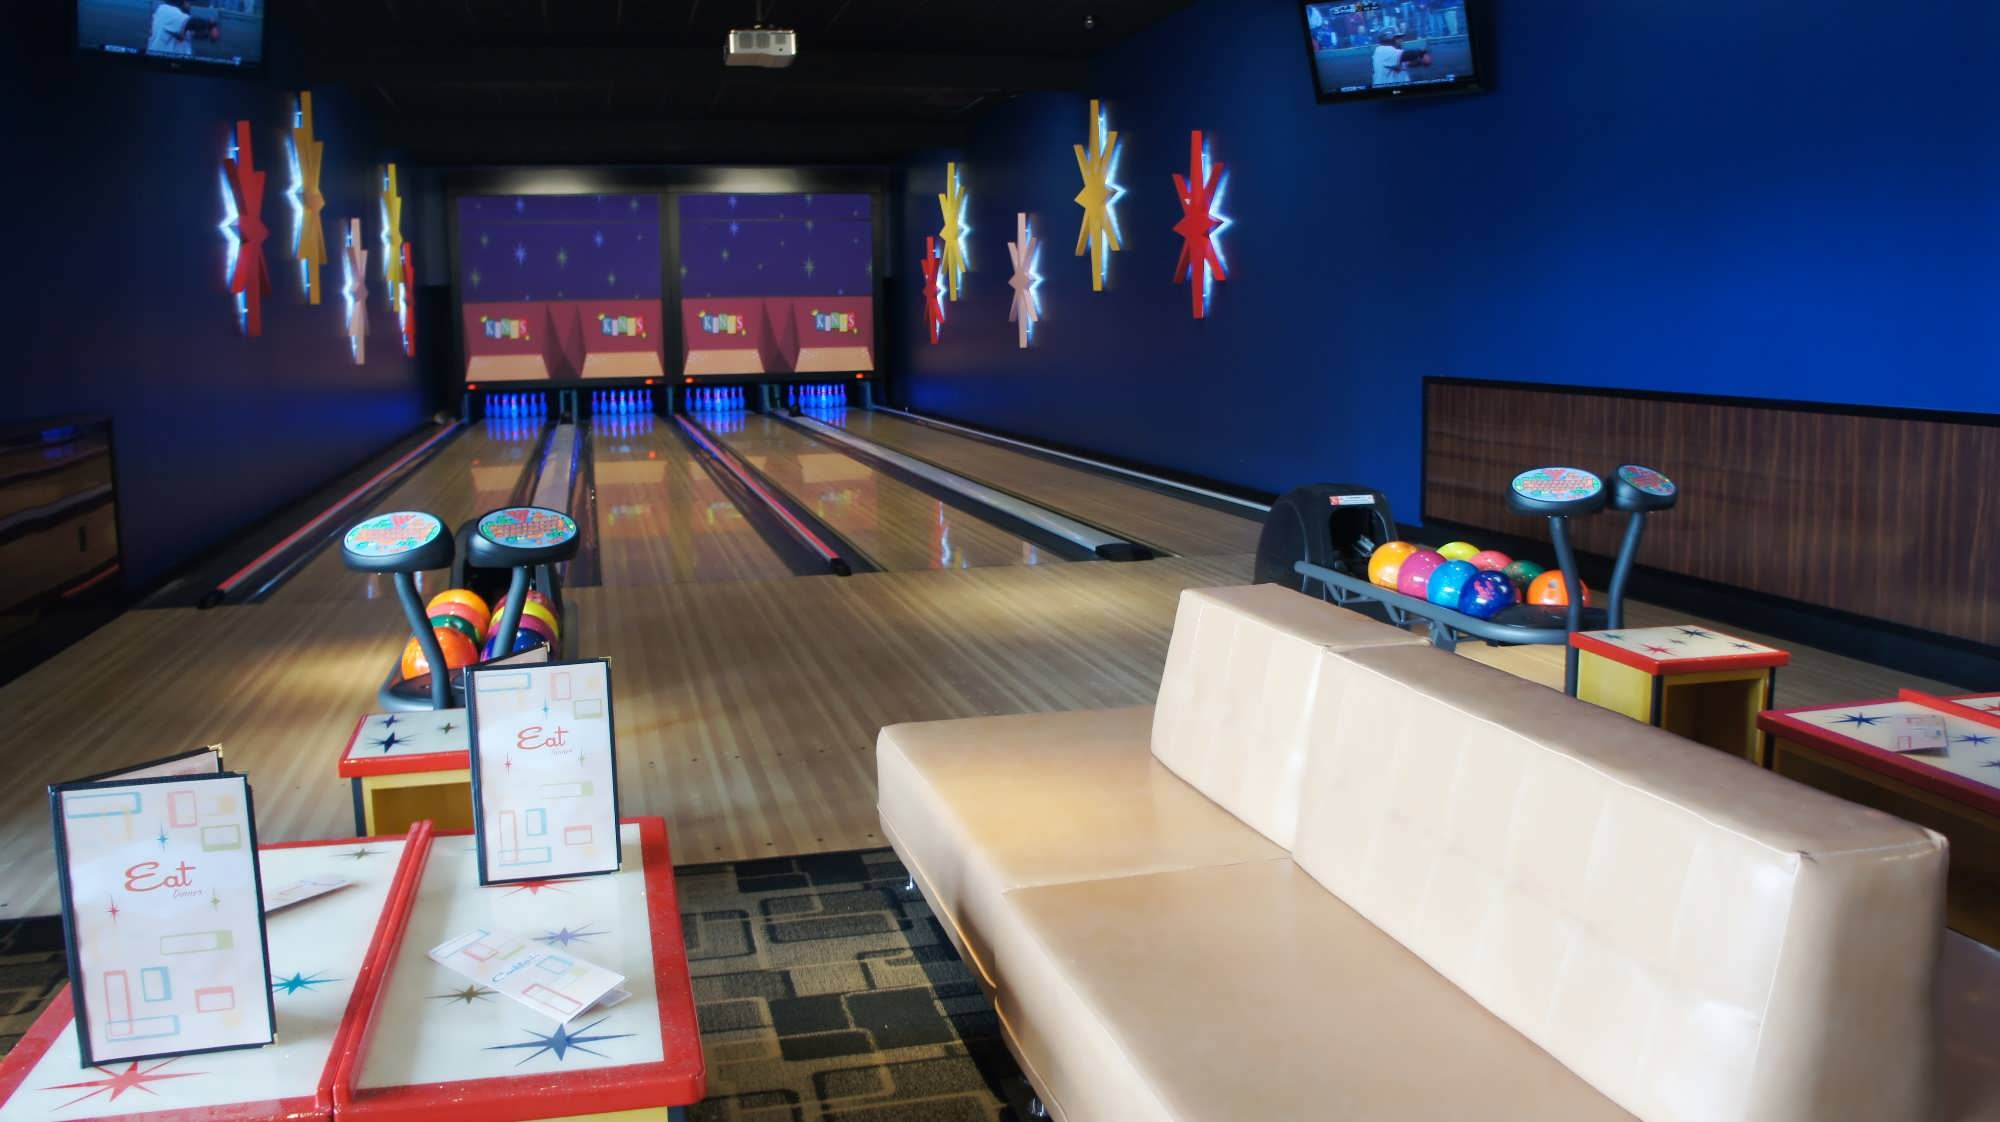 Kings Bowl Orlando I Drive Has A New Hot Spot For